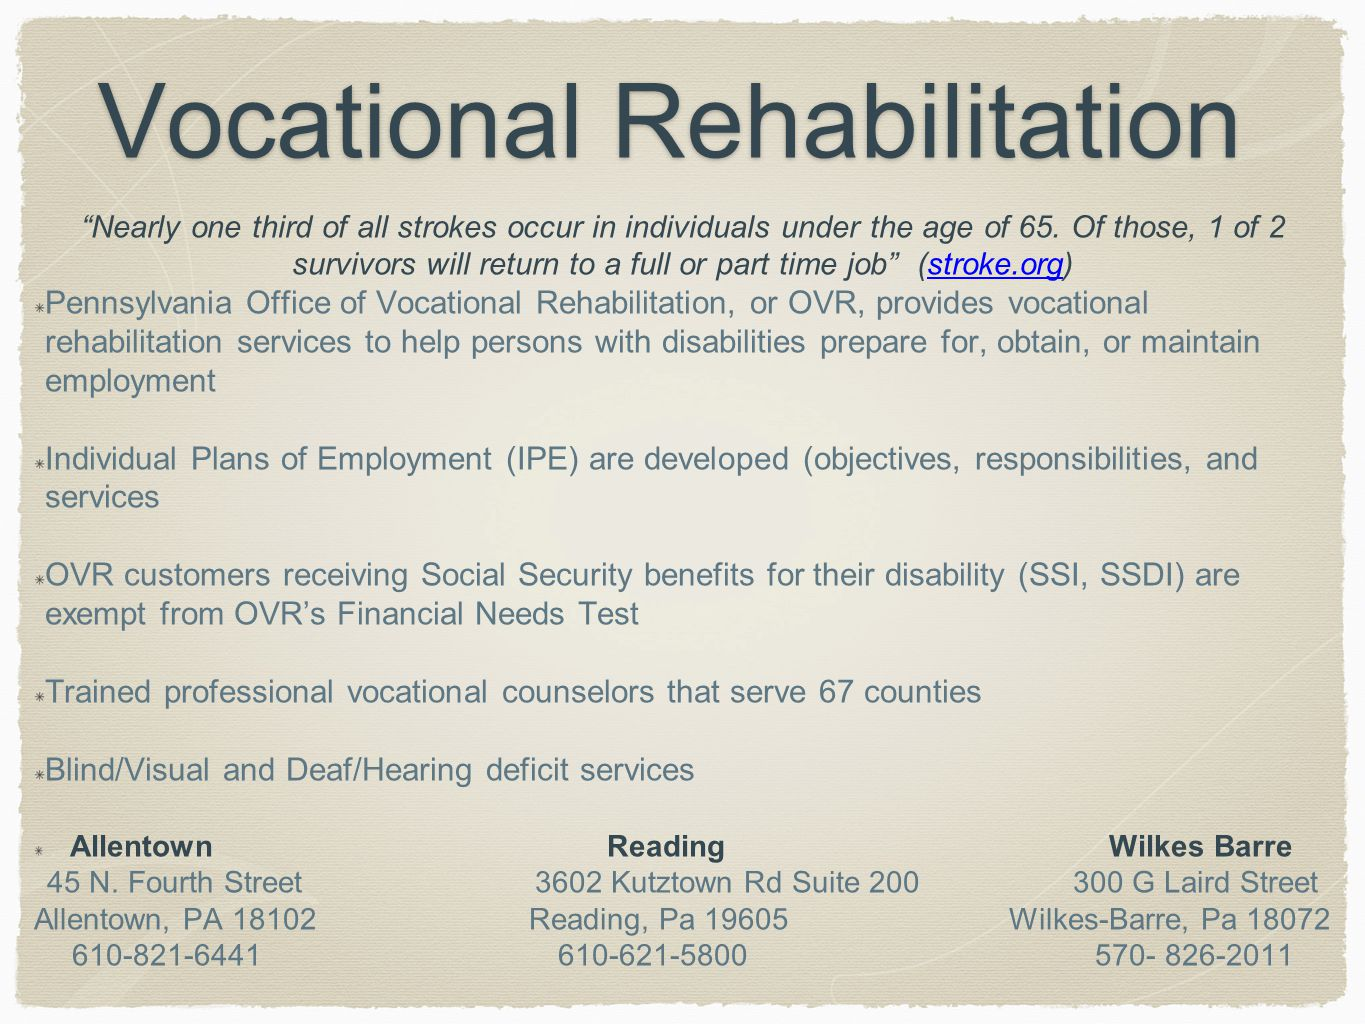 Vocational Rehabilitation Nearly one third of all strokes occur in individuals under the age of 65.